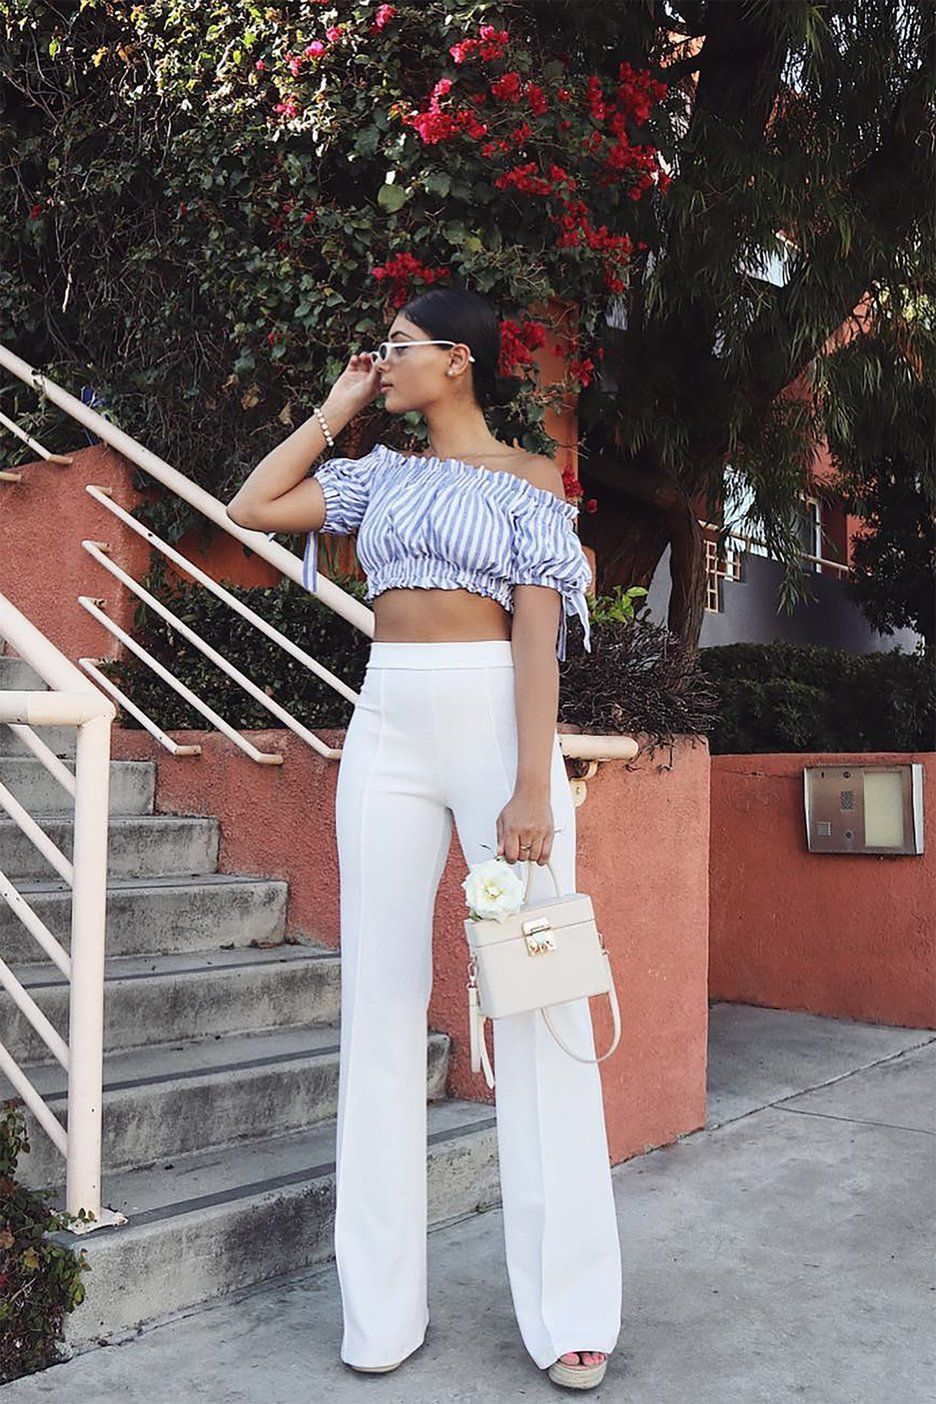 Victoria High Waisted Dress Pants Taupe High Waisted Dress Pants High Waisted Pants Outfit Cute White Dress [ 1404 x 936 Pixel ]